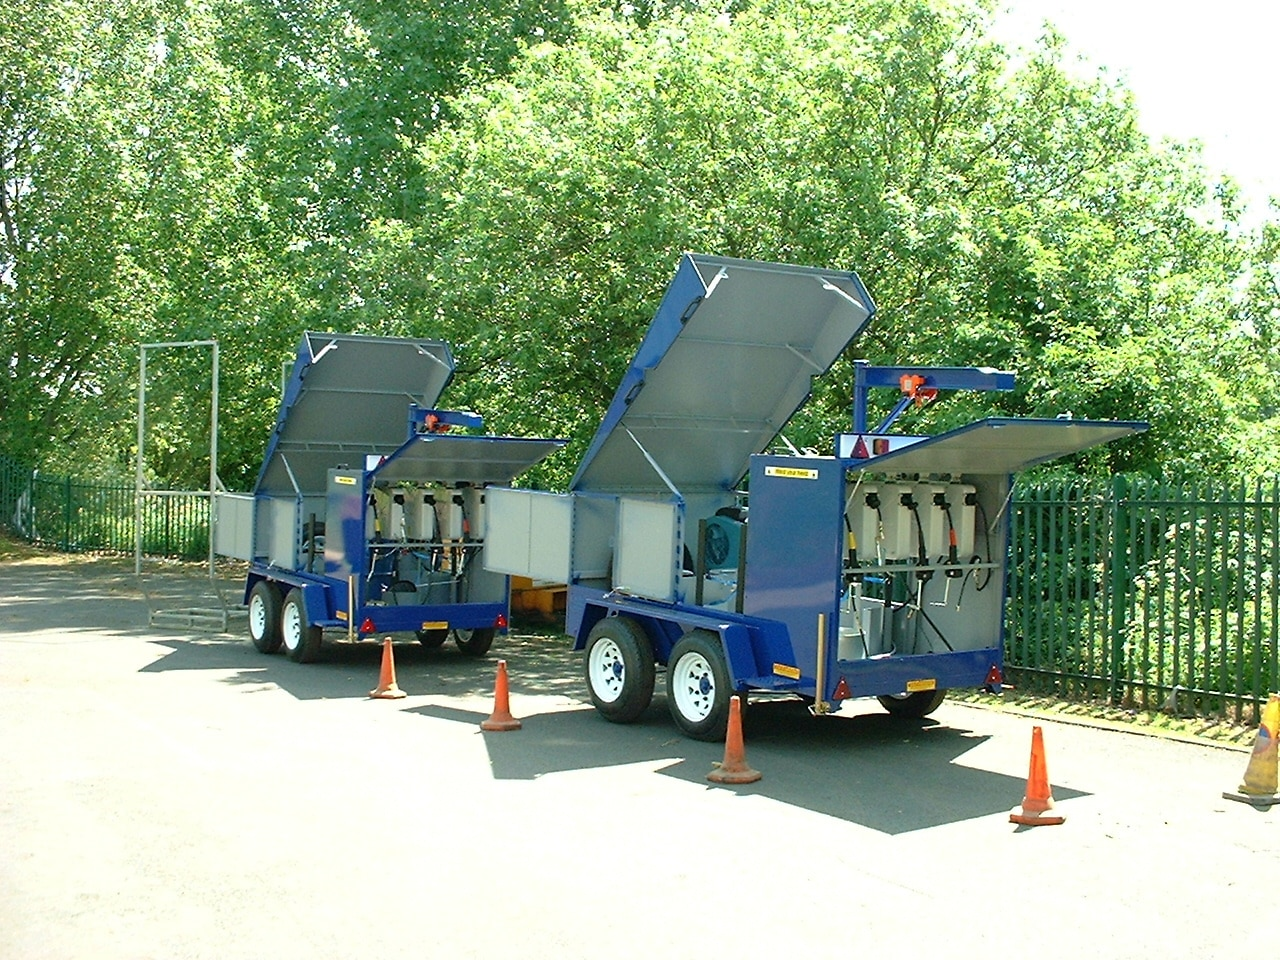 Two blue Jcb Lube Trailers